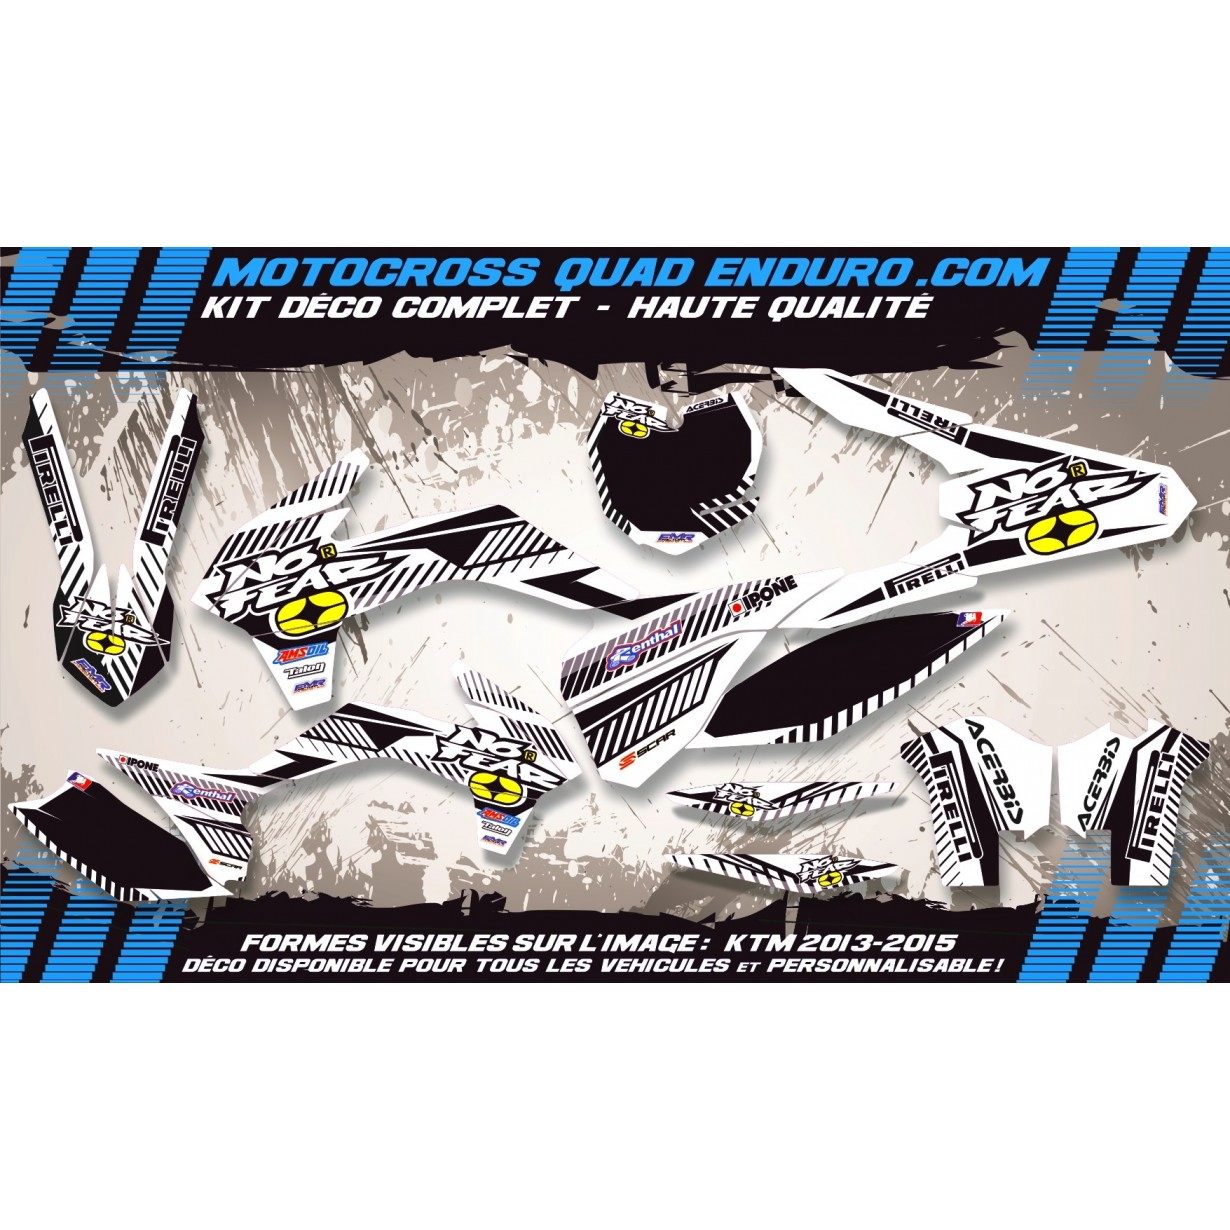 KIT DÉCO Perso 50 RR enduro 2007 NO FEAR MA5F